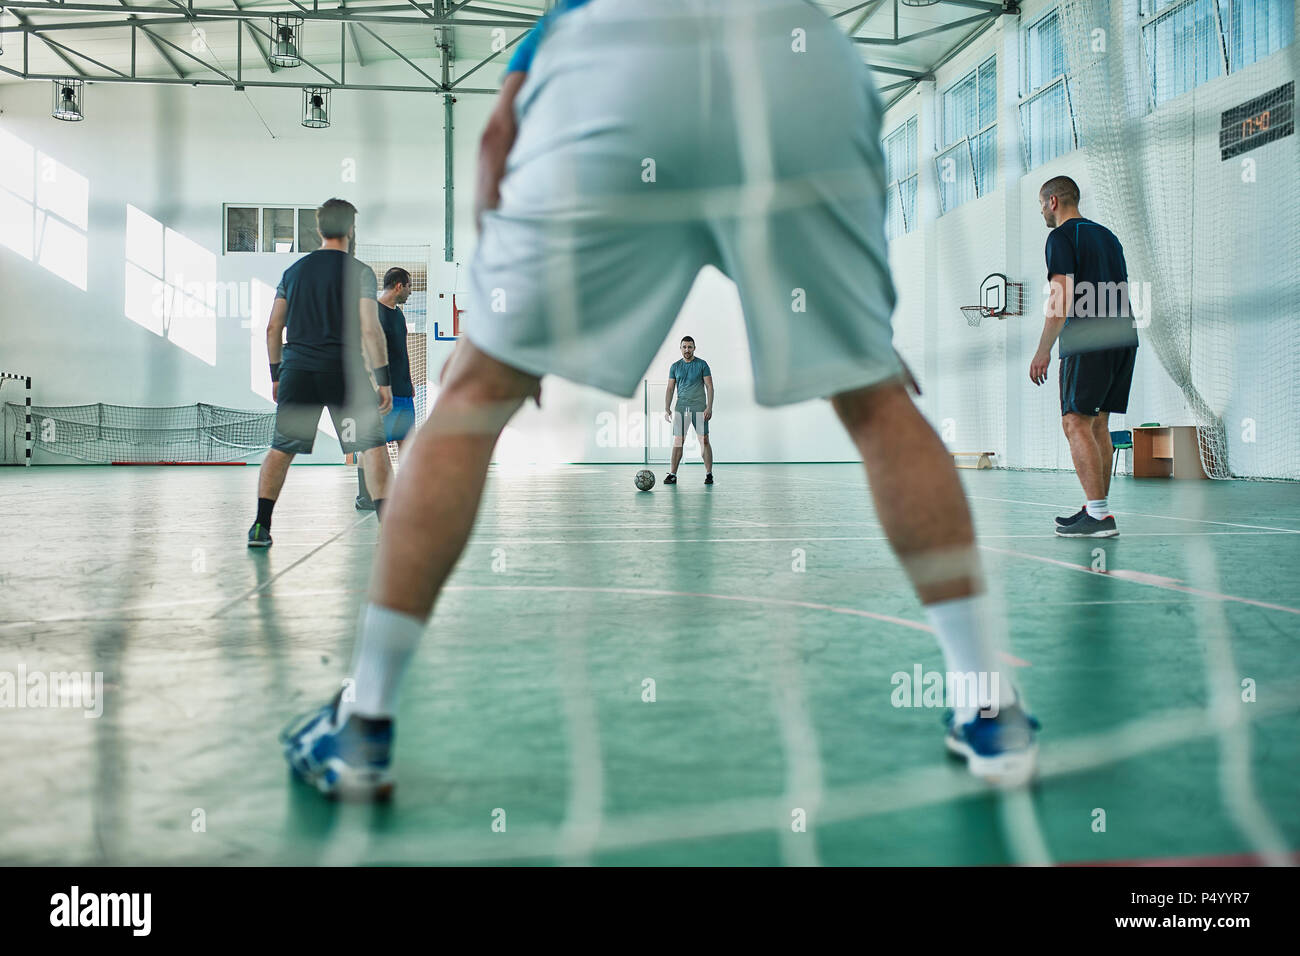 Men playing indoor soccer - Stock Image